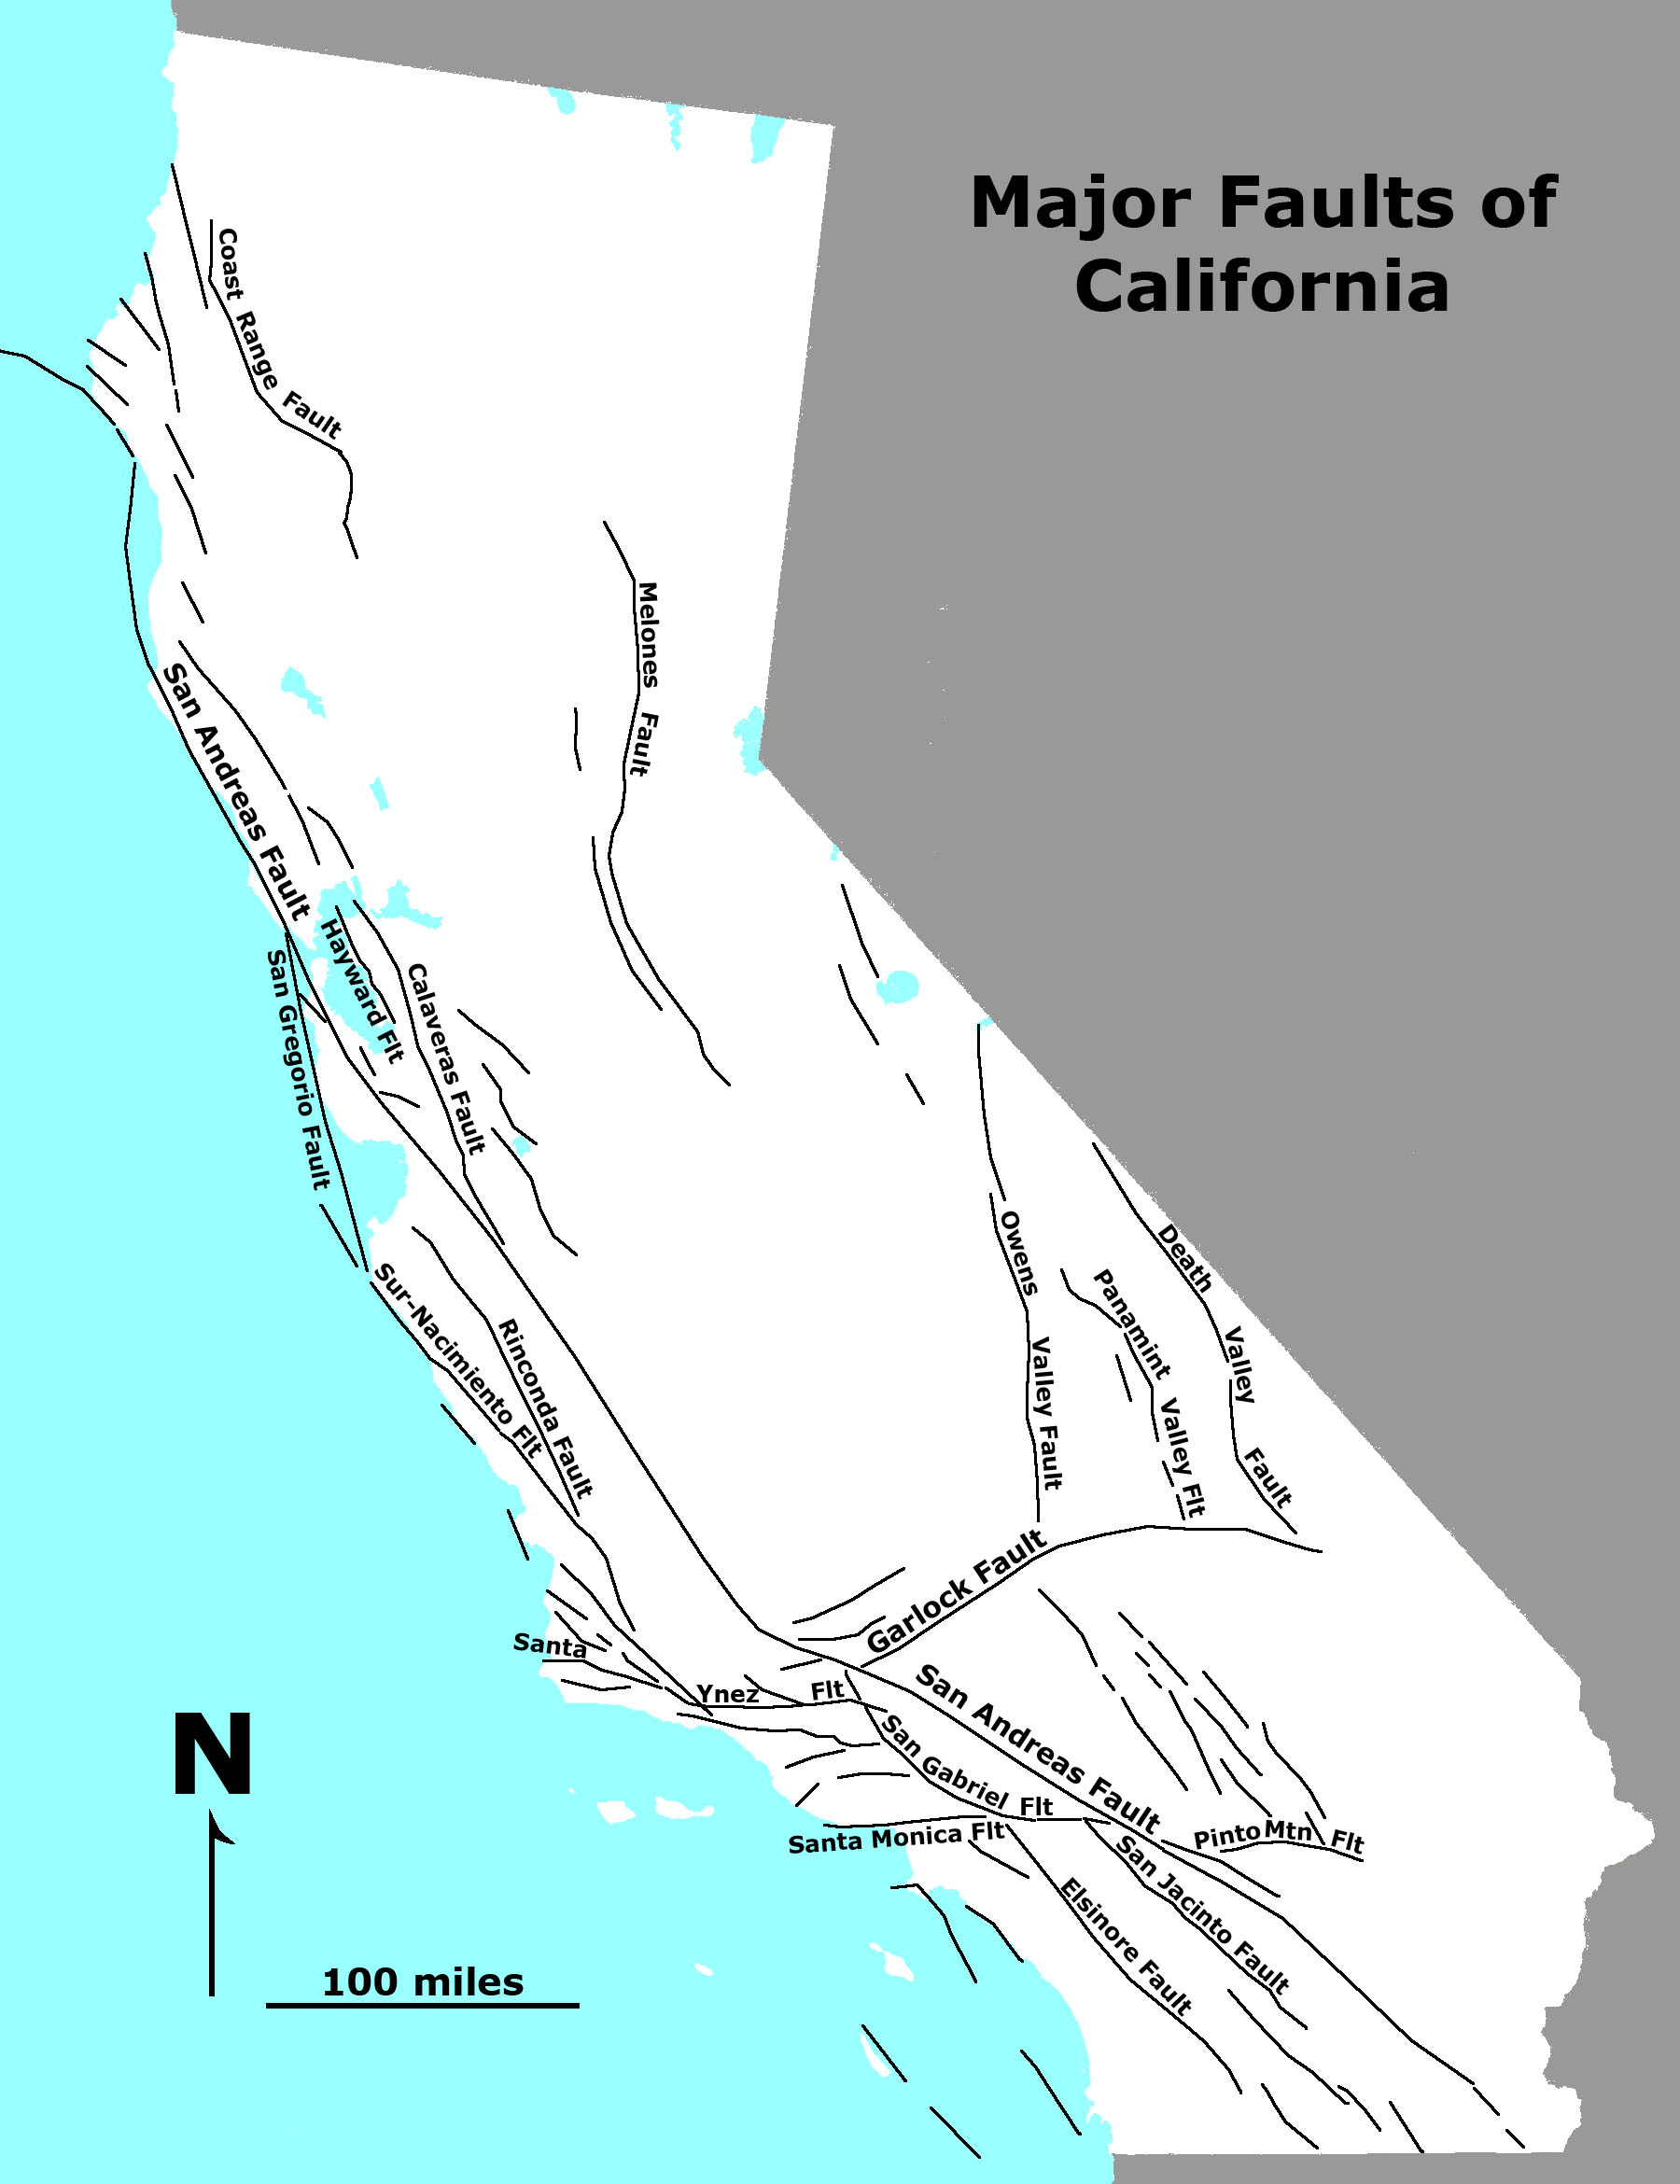 Fault Lines In California Map - Klipy - California Fault Lines Map